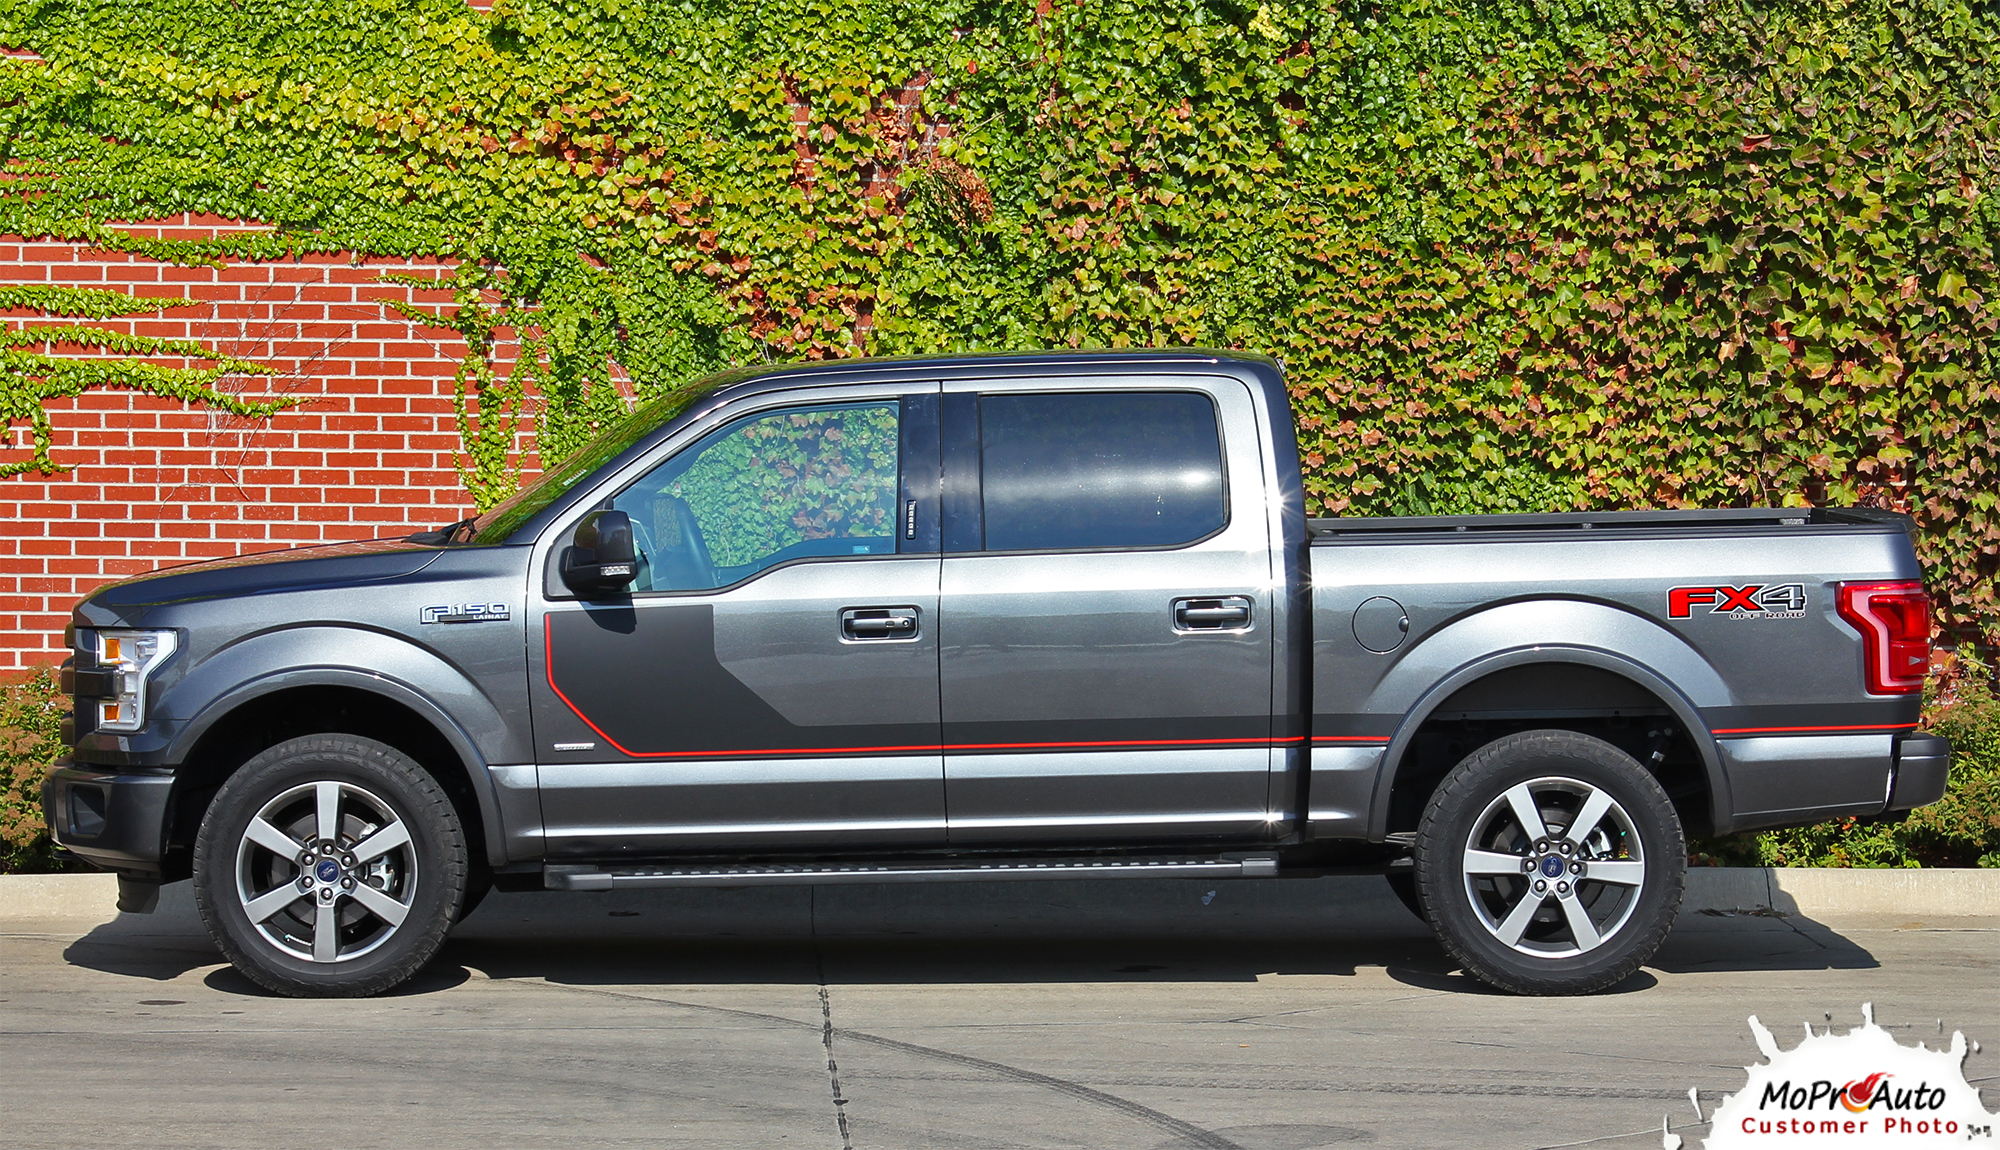 2015, 2016, 2017, 2018, 2019, 2020 Sideline Special Edition Ford F-Series F-150 Door Hockey Stick Appearance Package Vinyl Graphics and Decals Kit by MoProAuto Pro Design Series